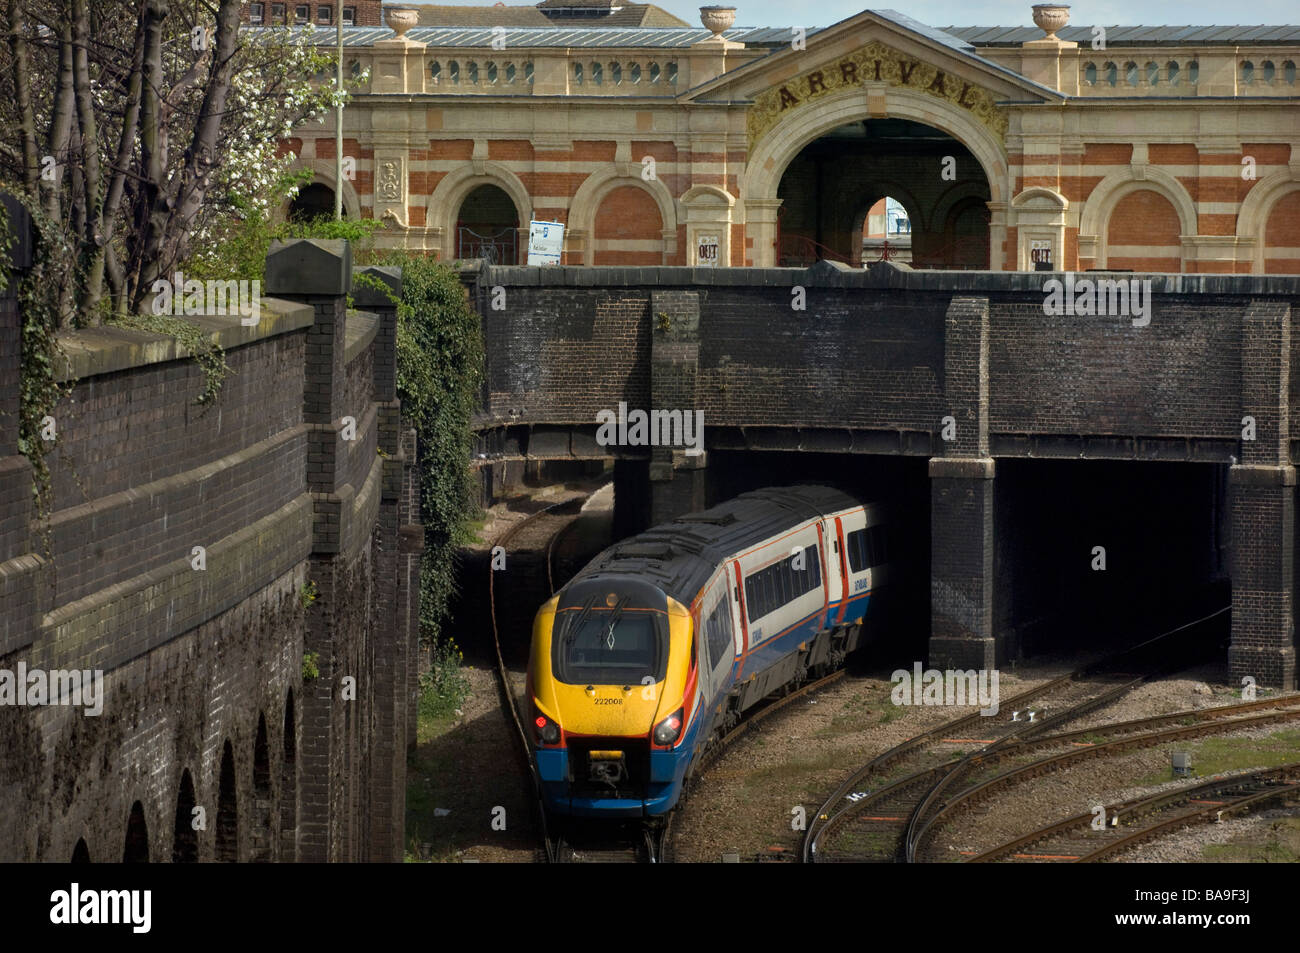 An East Midland Trains Midland Mainline Meridian Class 222 train arrives at Leicester Railway station. - Stock Image